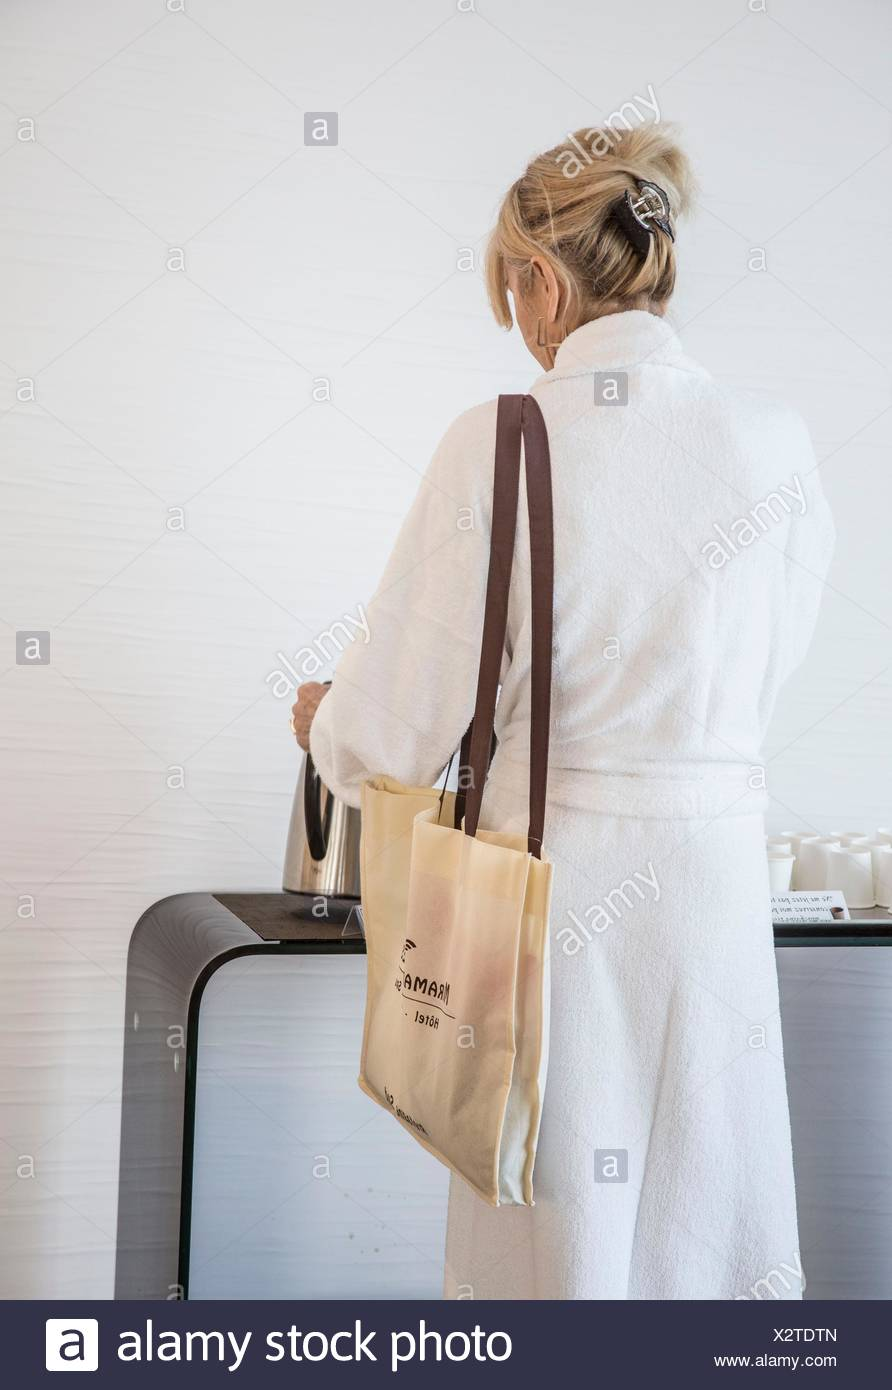 Caucasian blond woman in her spa robe in her 30´s, 40´s, 50´s with her hair tied up and getting tea between treatment. Stock Photo